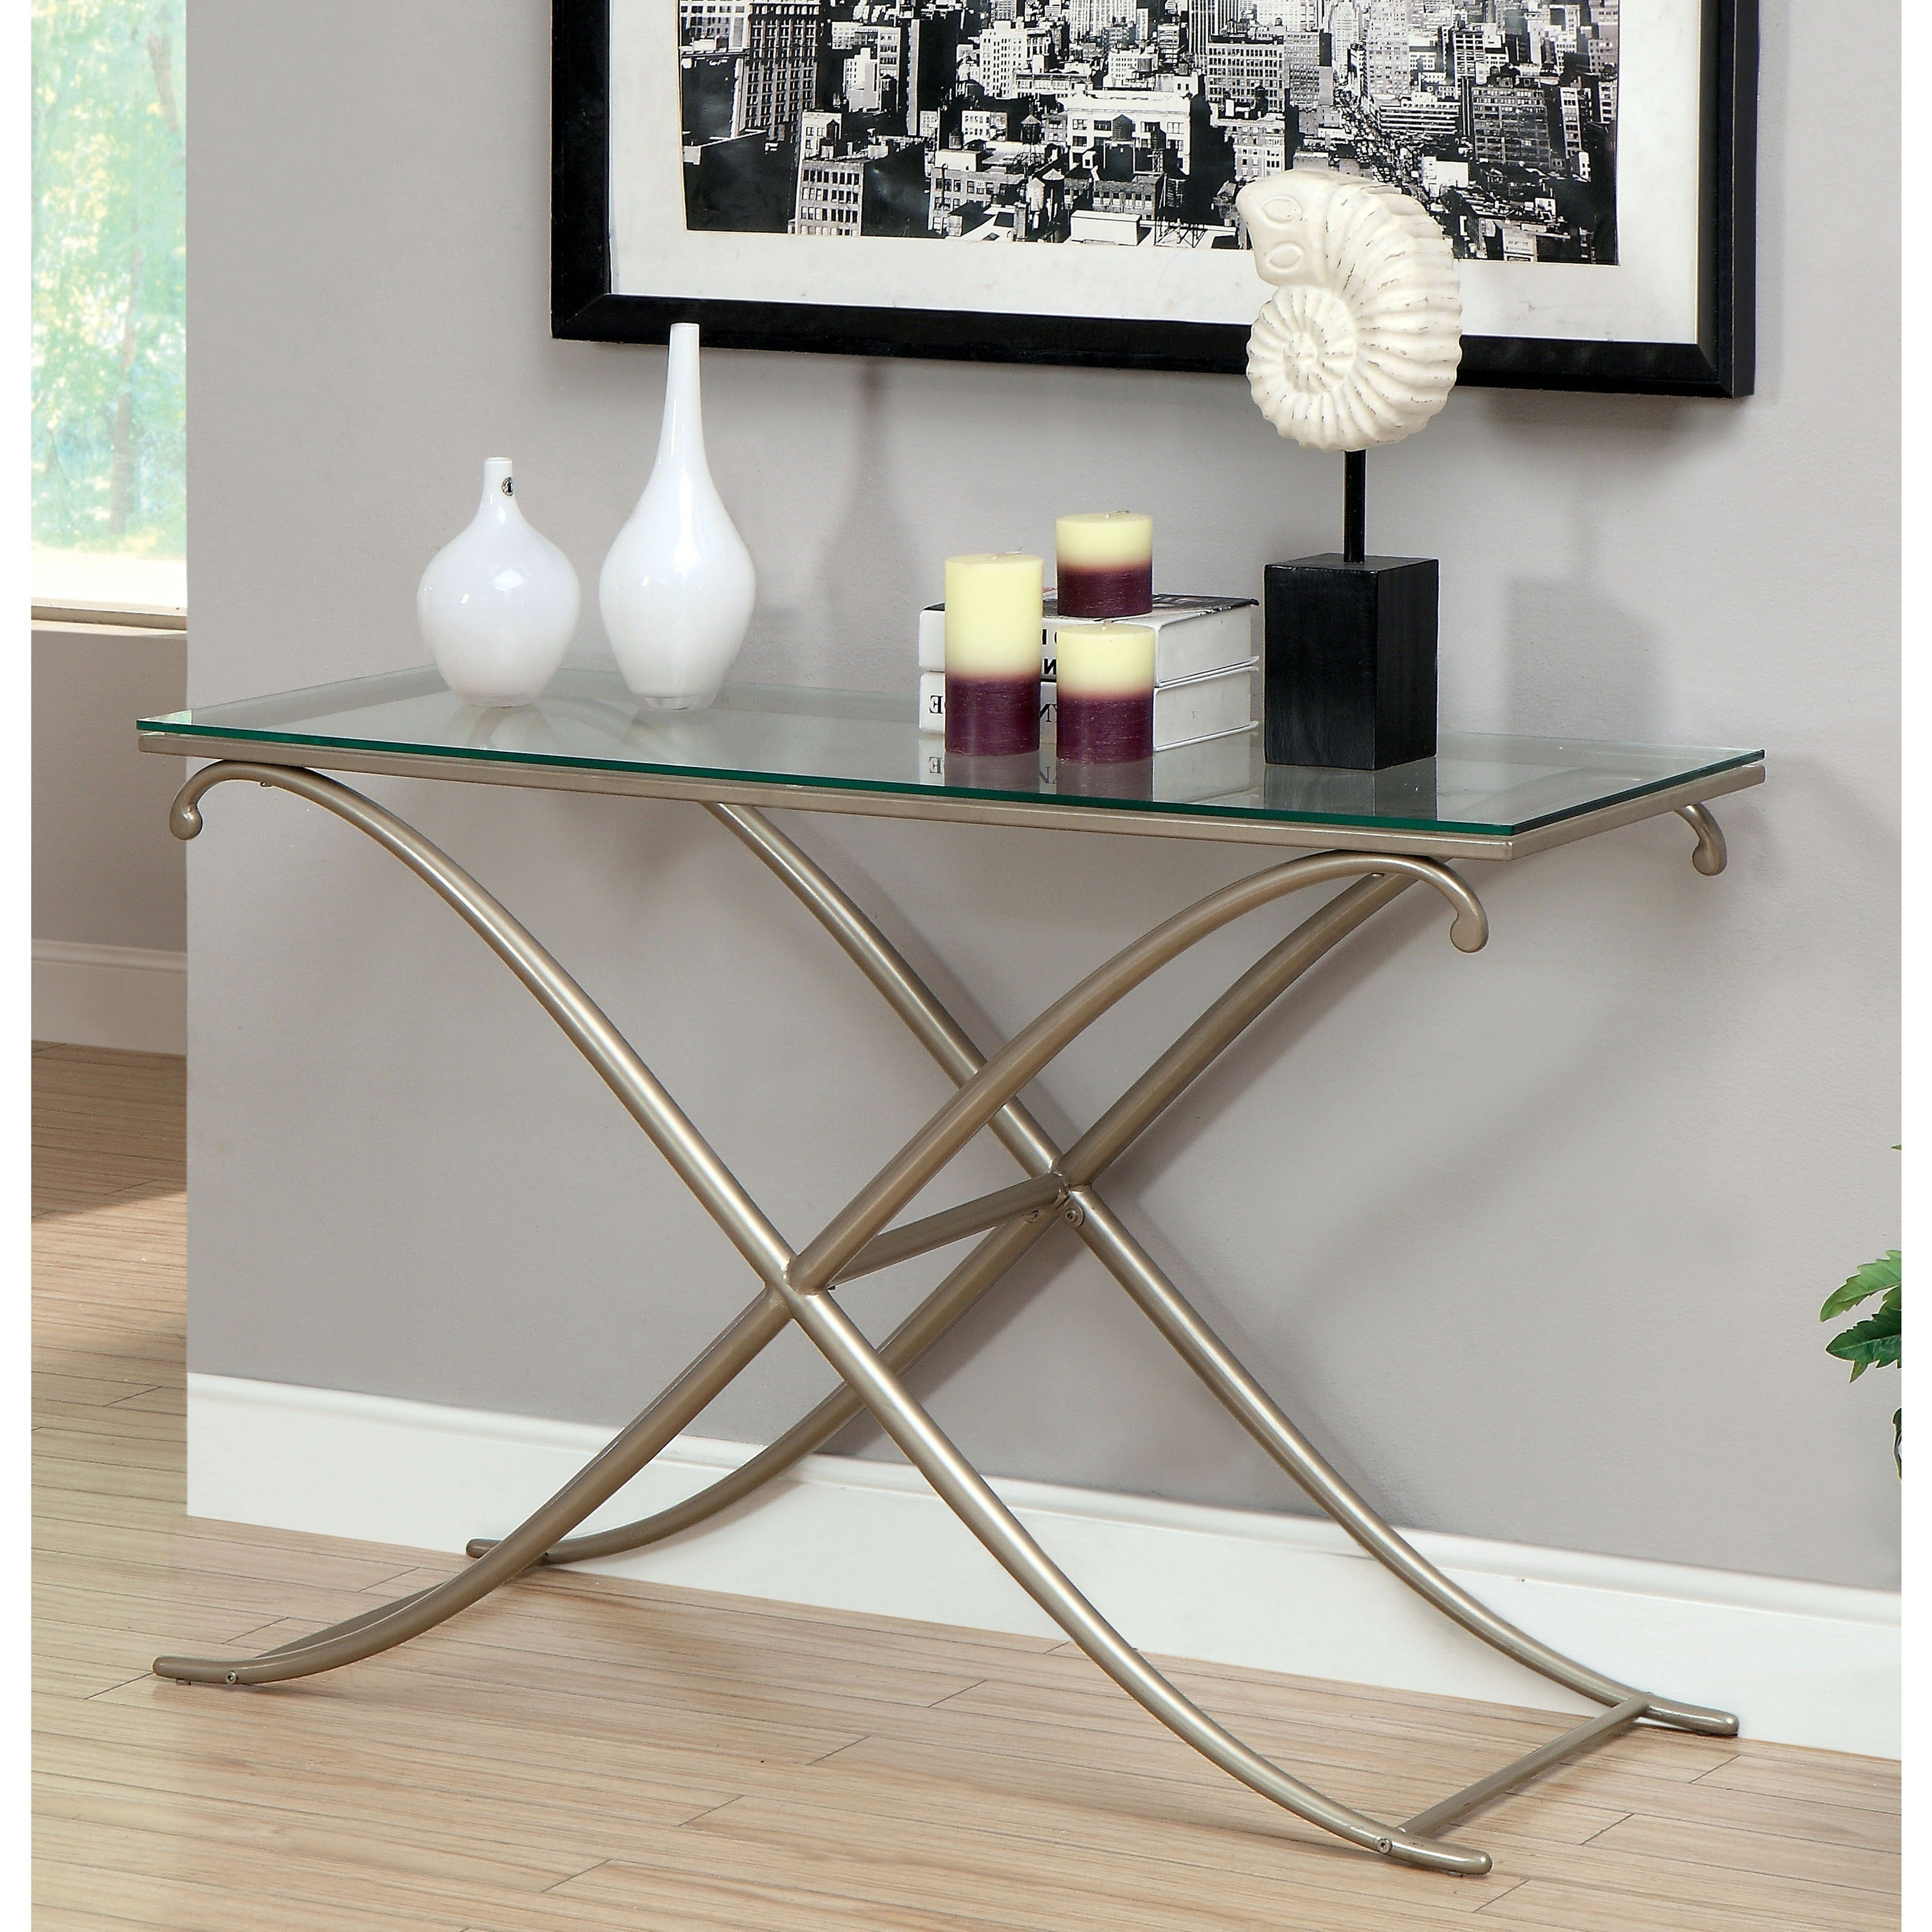 Fashionable Furniture Of America Orelia Brass Luxury Copper Metal Coffee Tables Intended For Furniture Of America Visconti Contemporary Sofa Table (View 8 of 20)